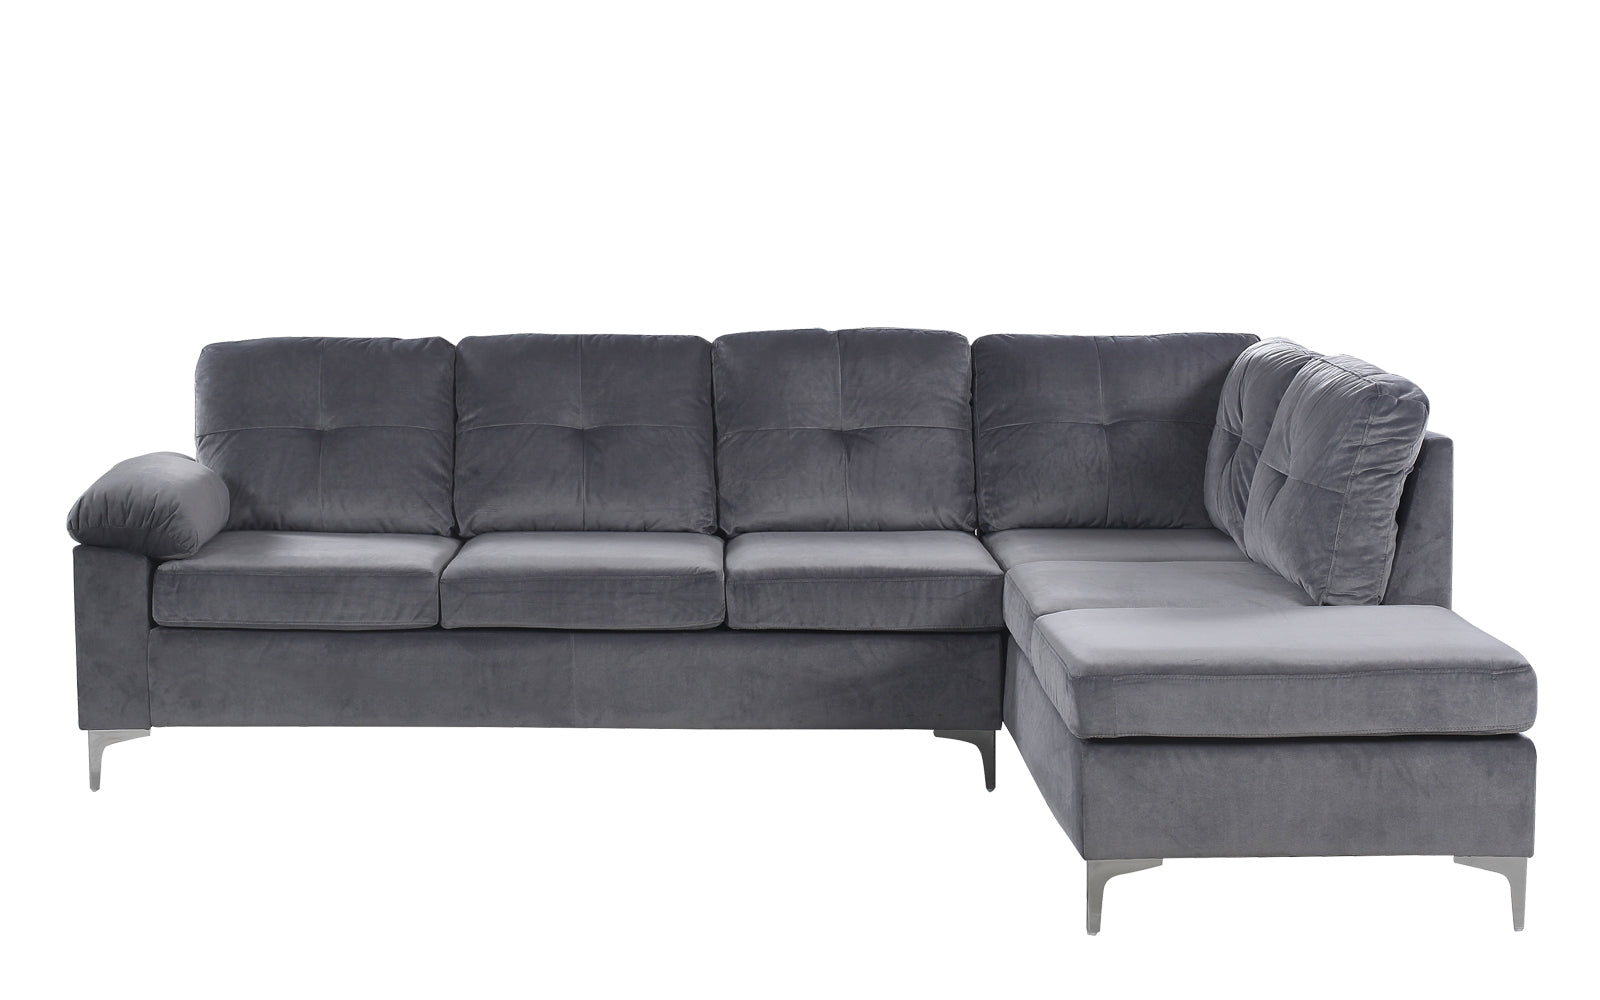 Microfiber Sectional Sofa Image